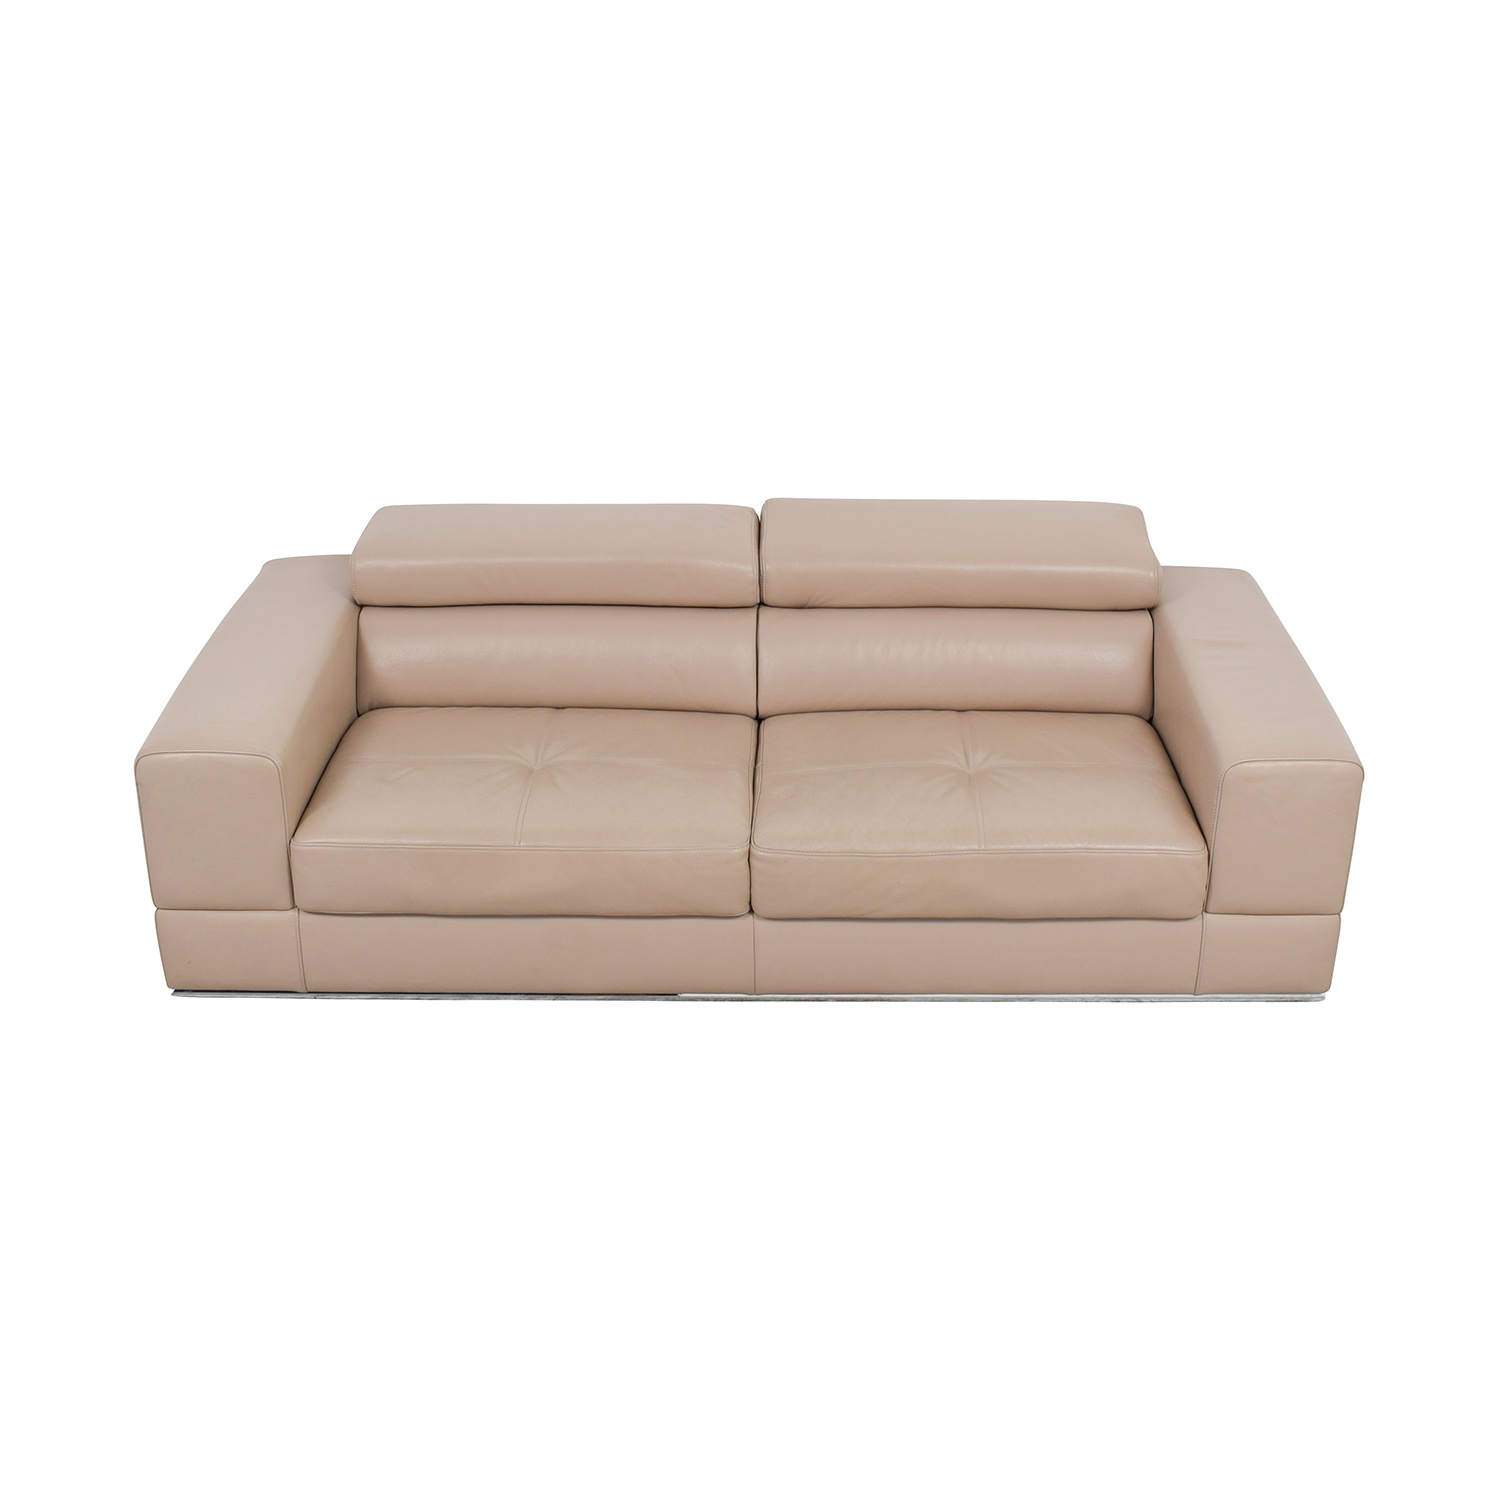 Shop Lazzoni Beige Leather Sofa Lazzoni